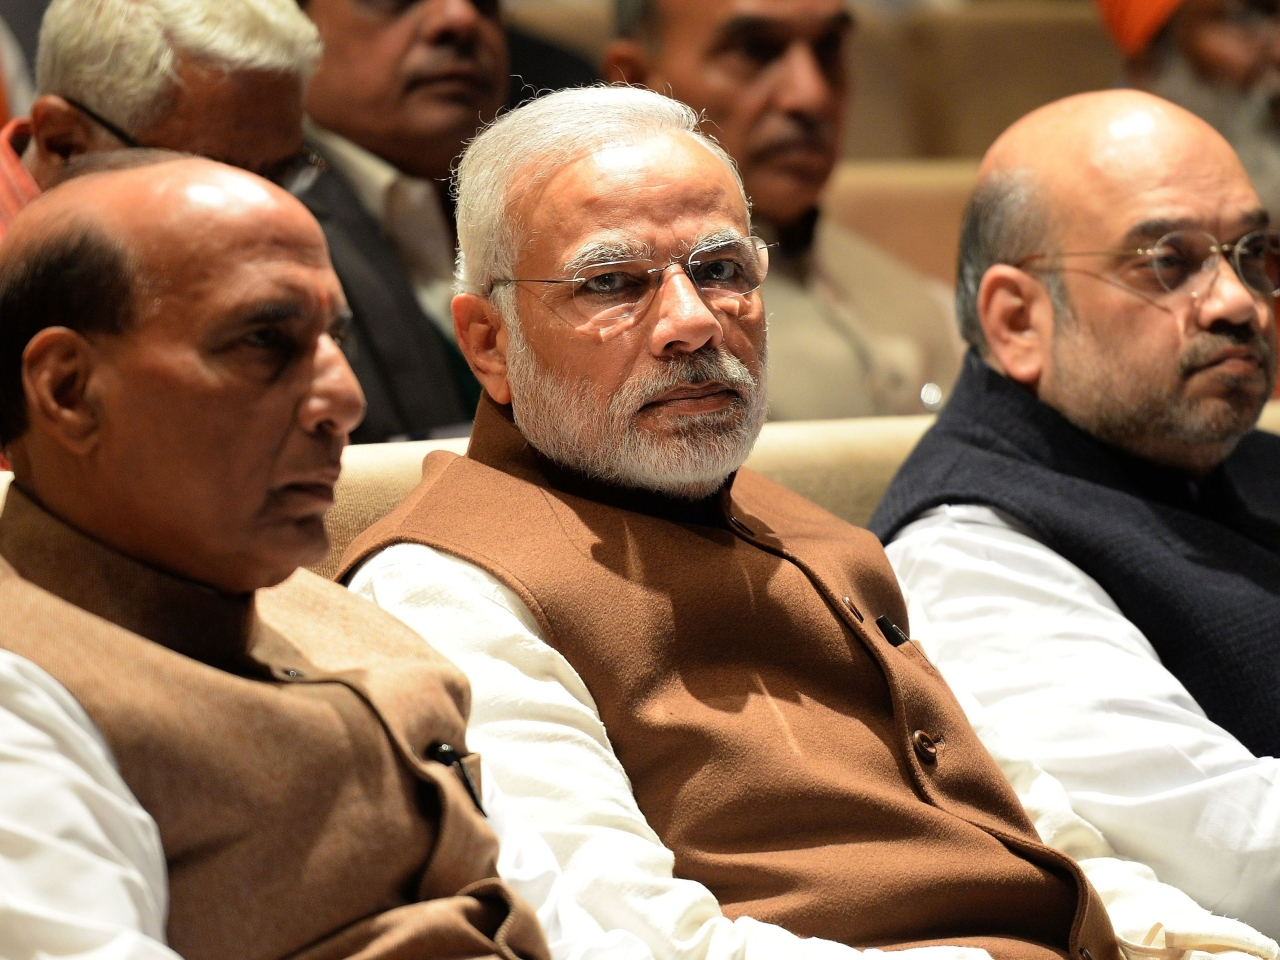 Prime Minister Narendra Modi (centre) at an event in New Delhi. (PRAKASH SINGH/AFP/Getty Images)